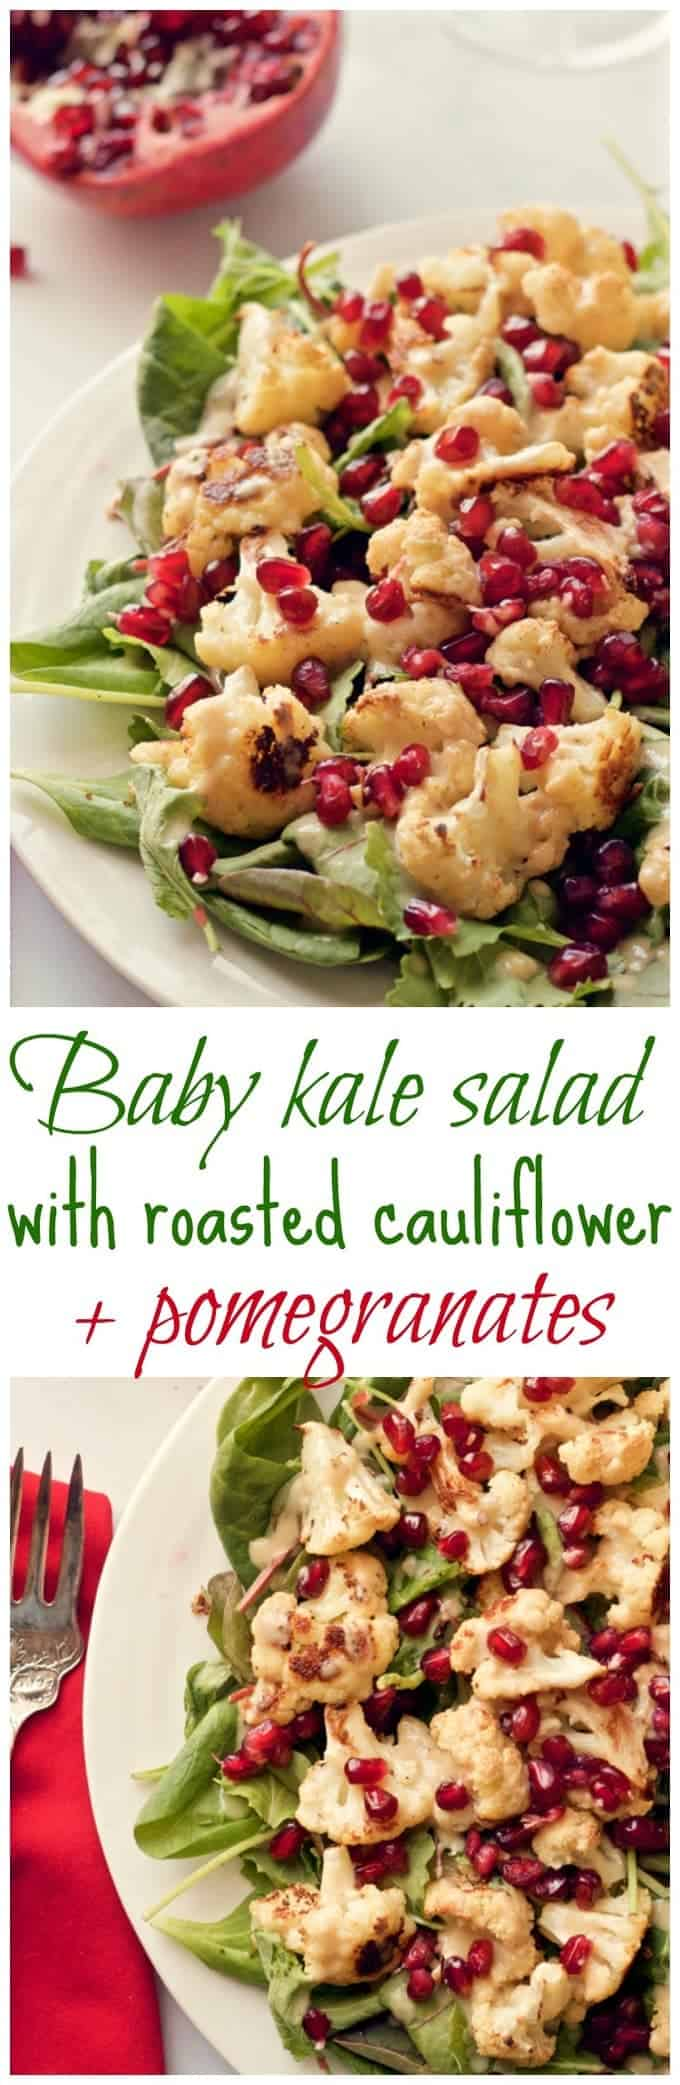 Baby kale and roasted cauliflower salad sprinkled with pomegranate seeds and drizzled with a creamy tahini dressing   FamilyFoodontheTable.com